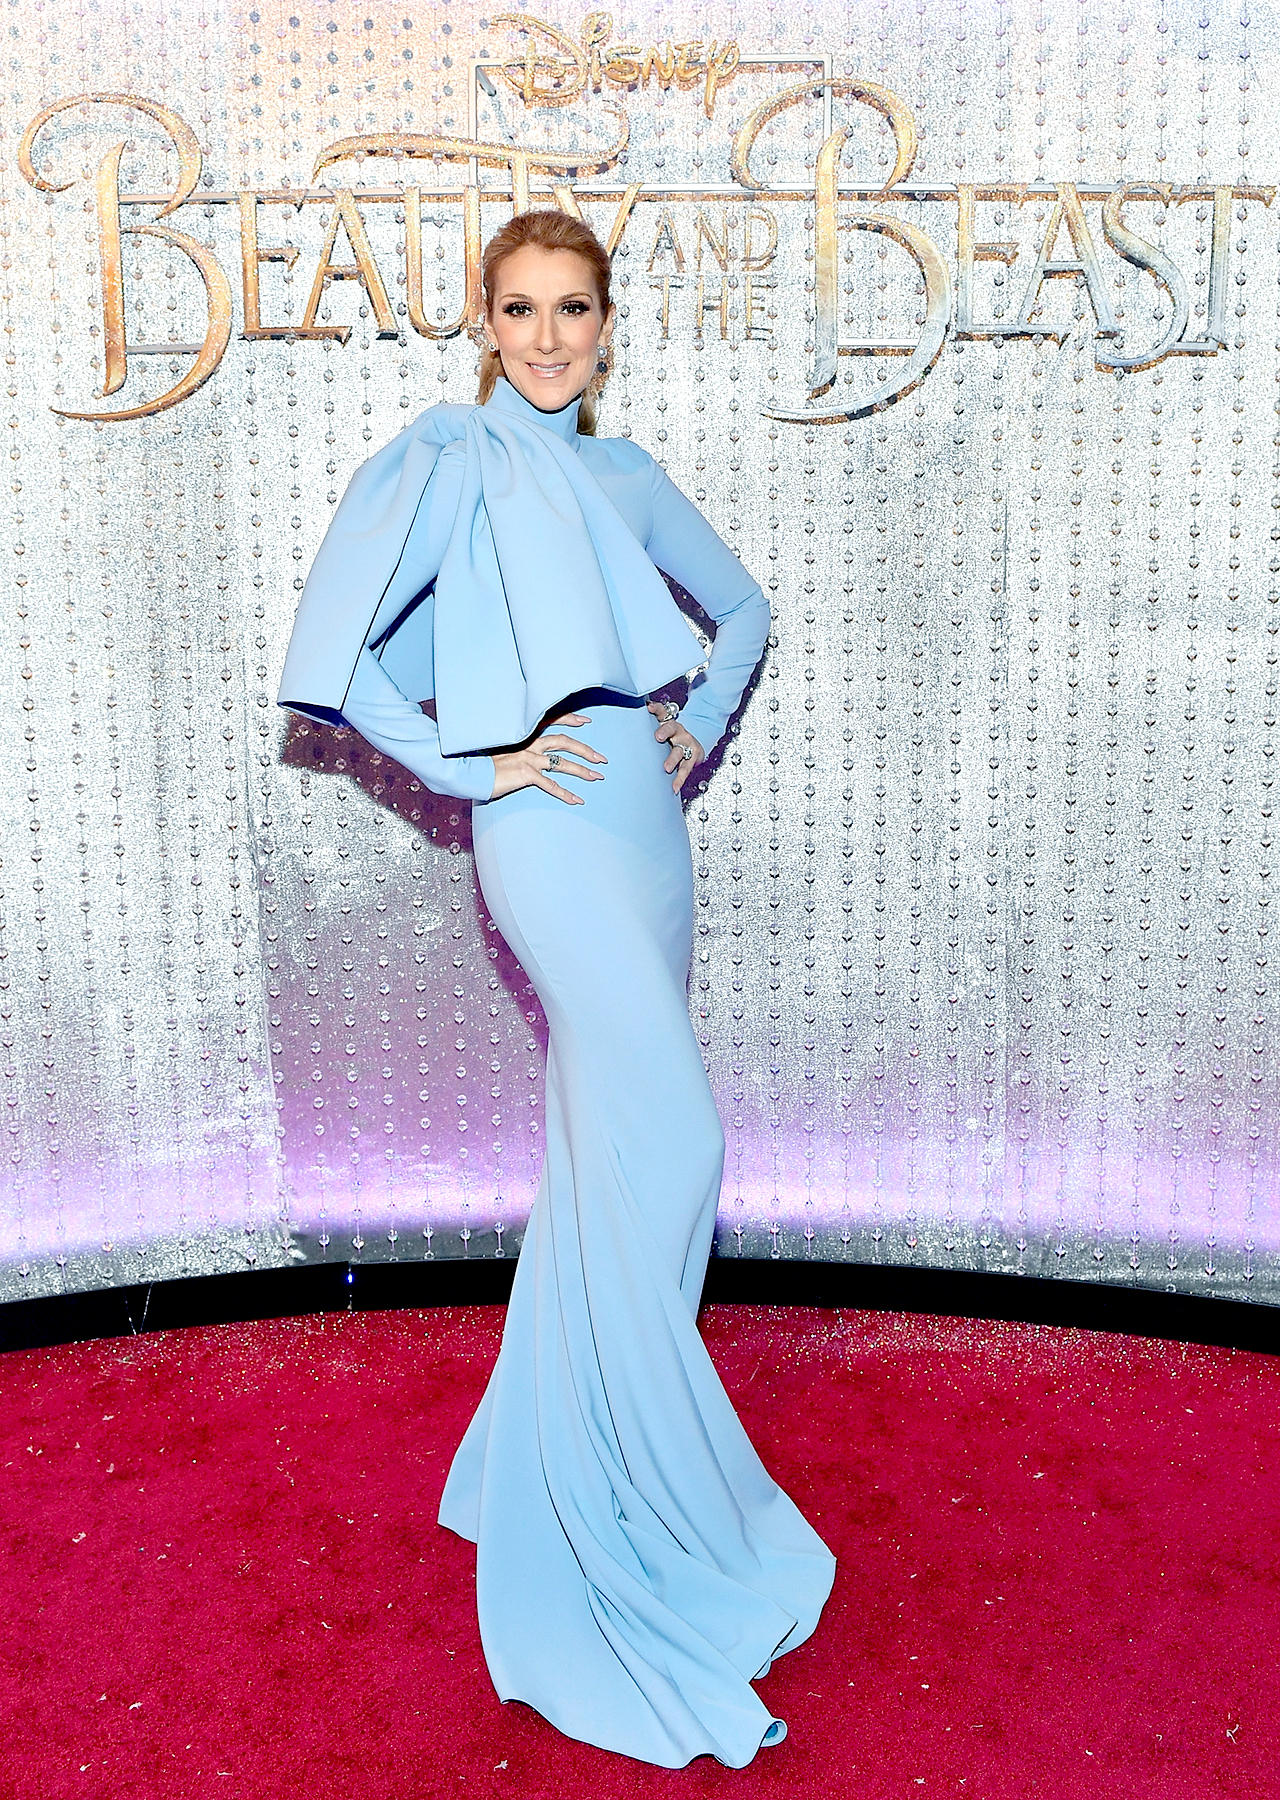 "Celine Dion arrives at the world premiere of Disney's new live-action ""Beauty and the Beast"" photographed in front of the Swarovski crystal wall at the El Capitan Theatre on March 2, 2017 in Hollywood, California."